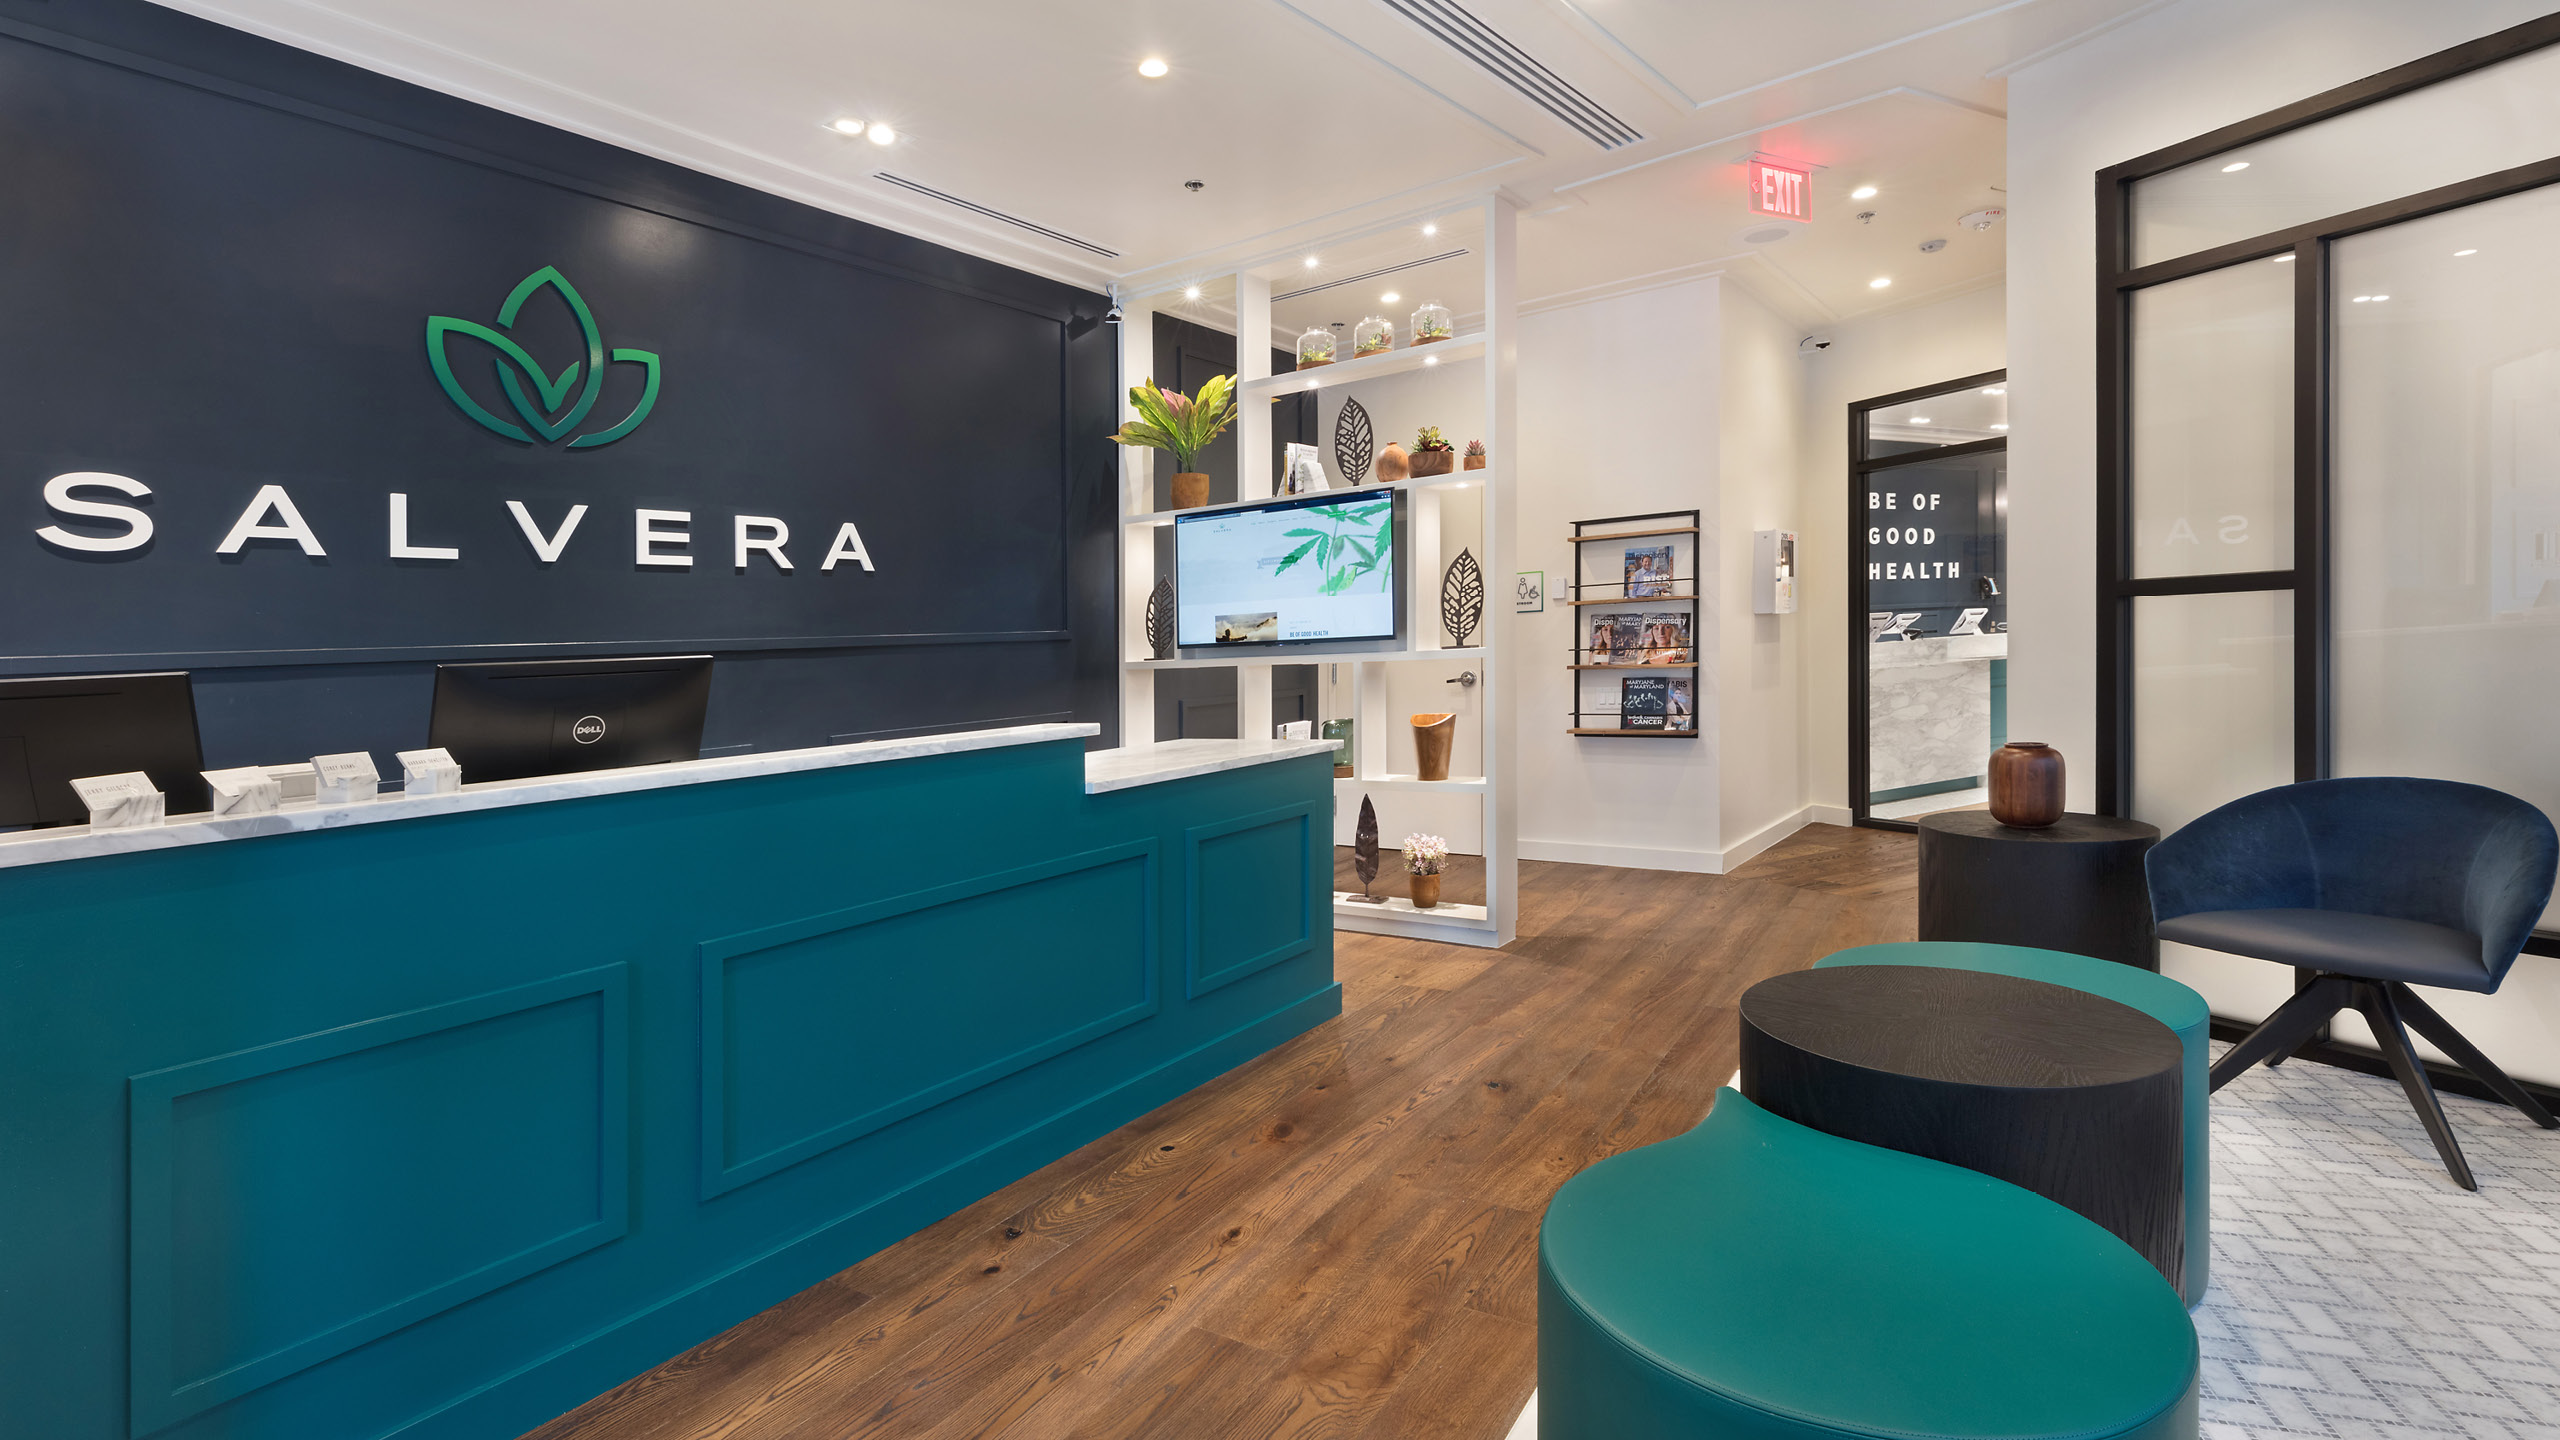 Salvera Signature Brand Elements by High Road Design Studio